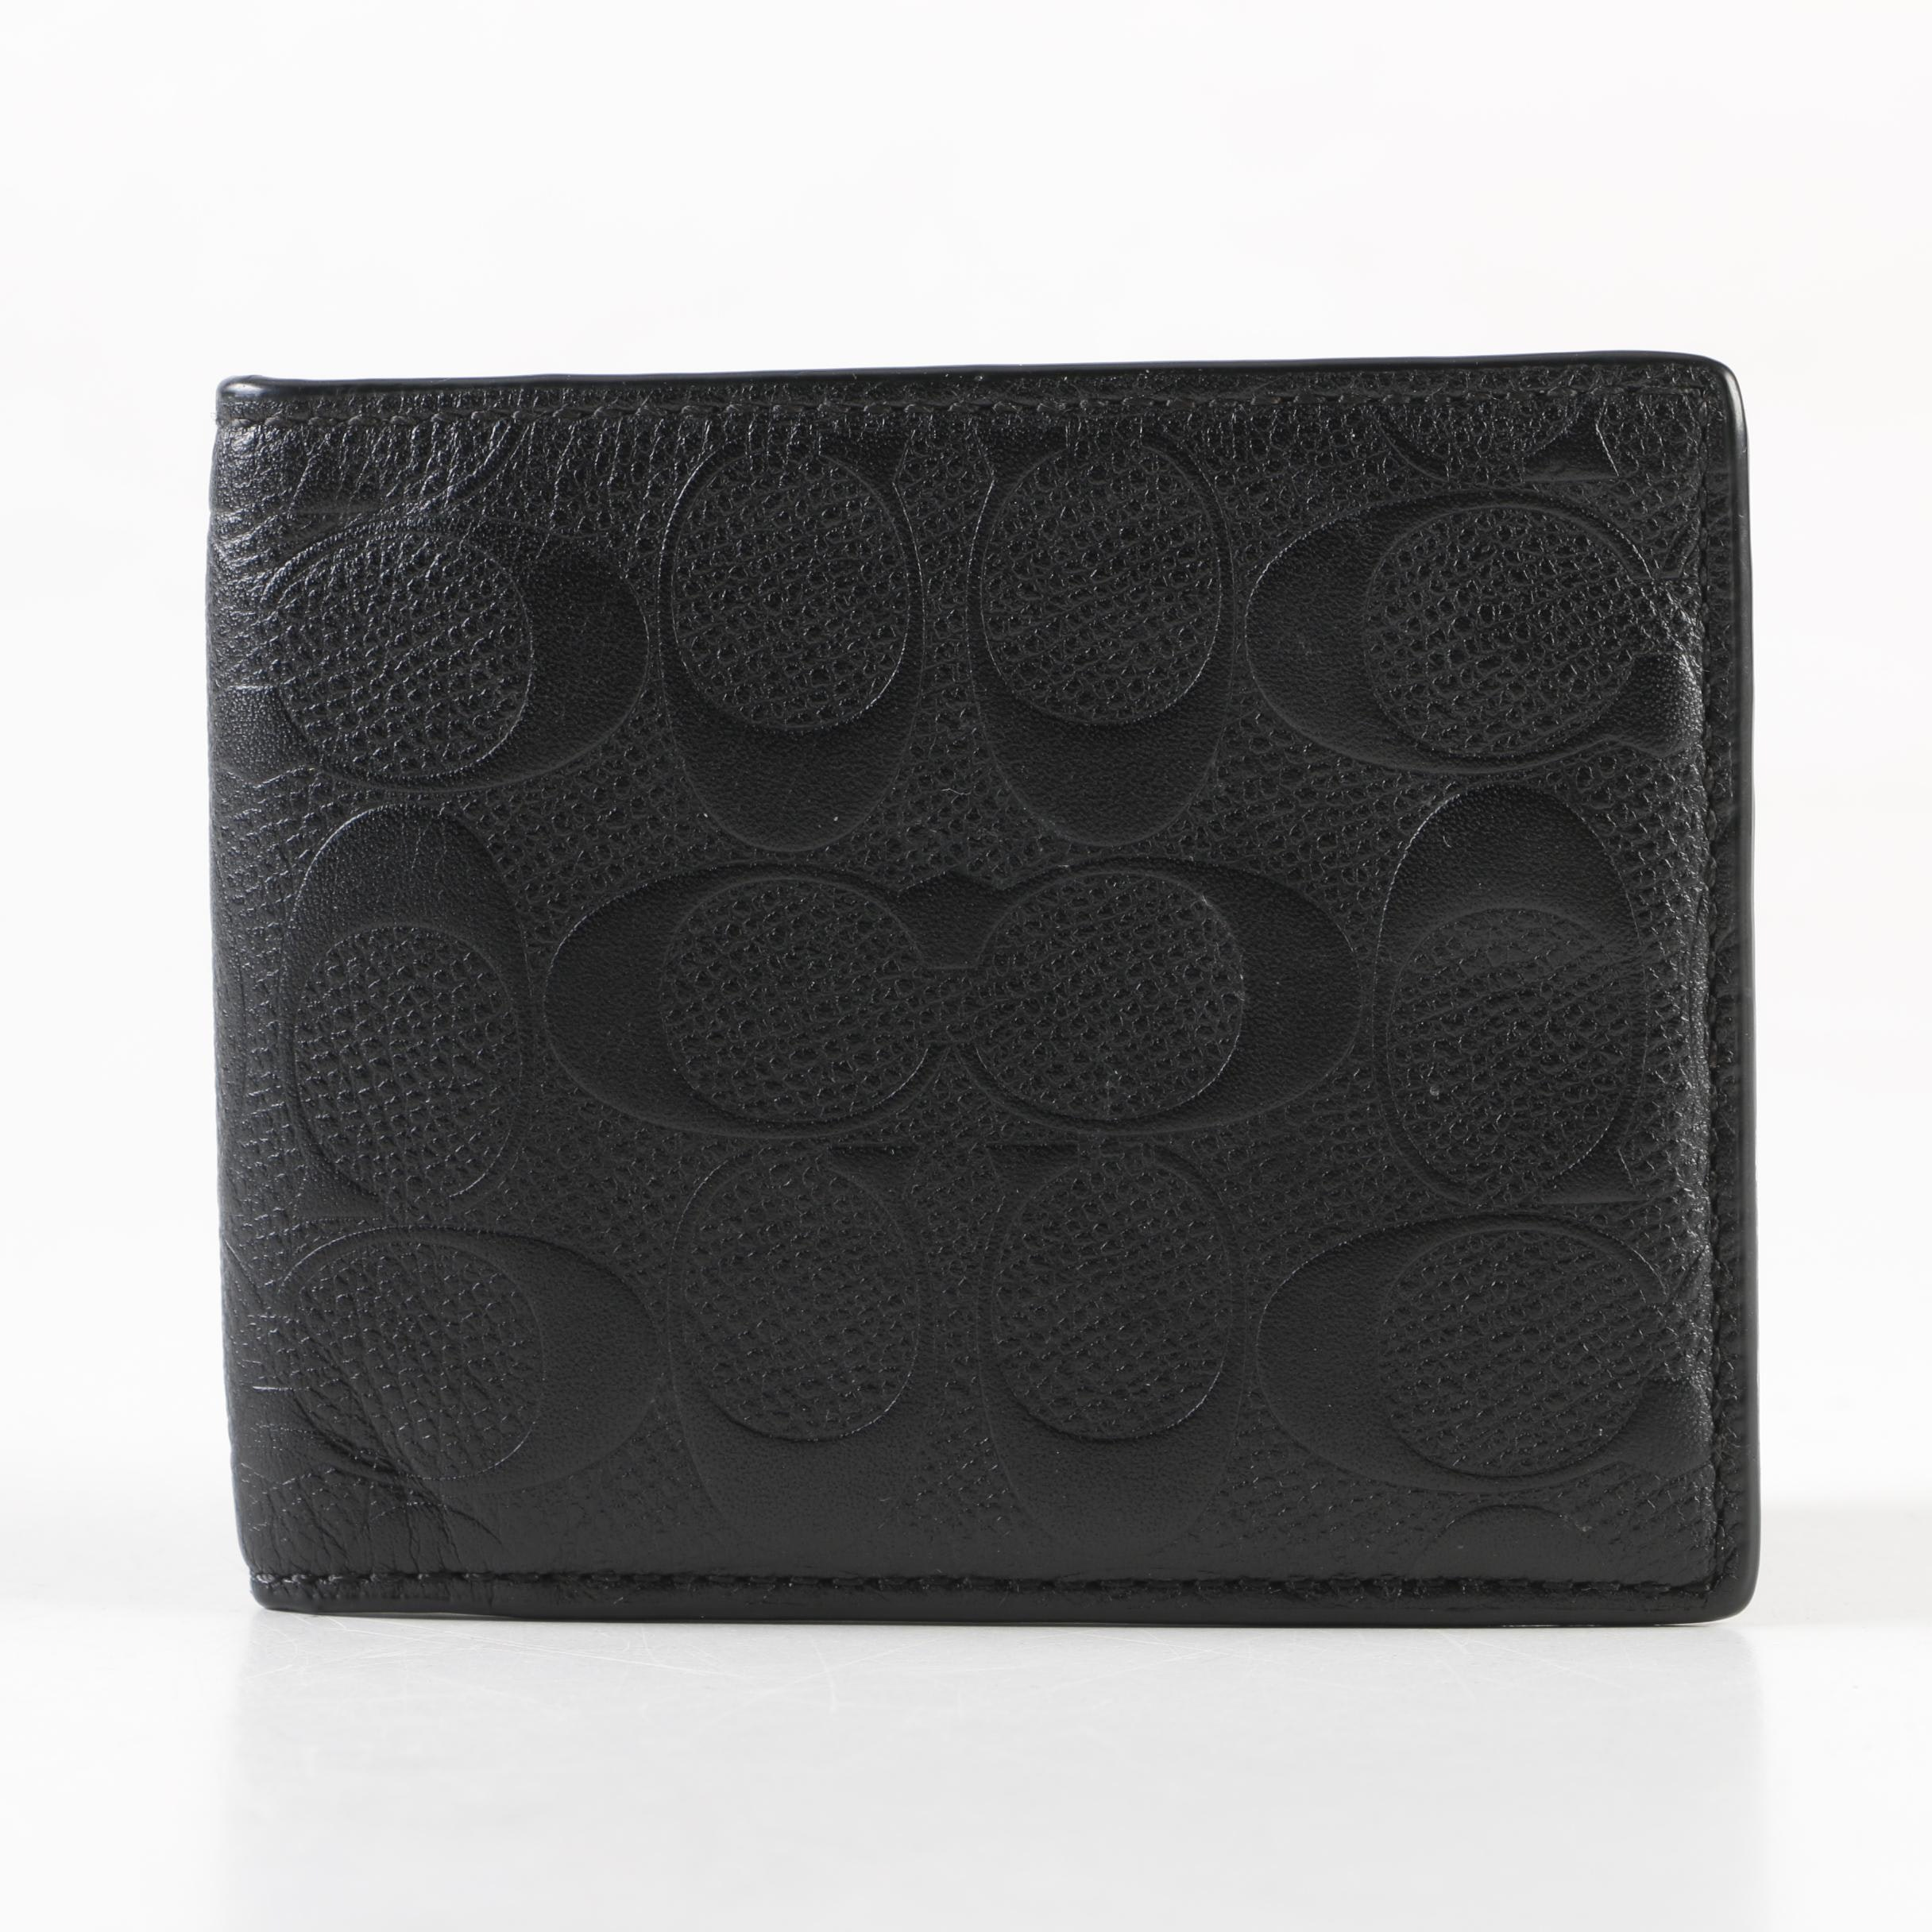 Coach Signature Embossed Black Leather Bifold Wallet